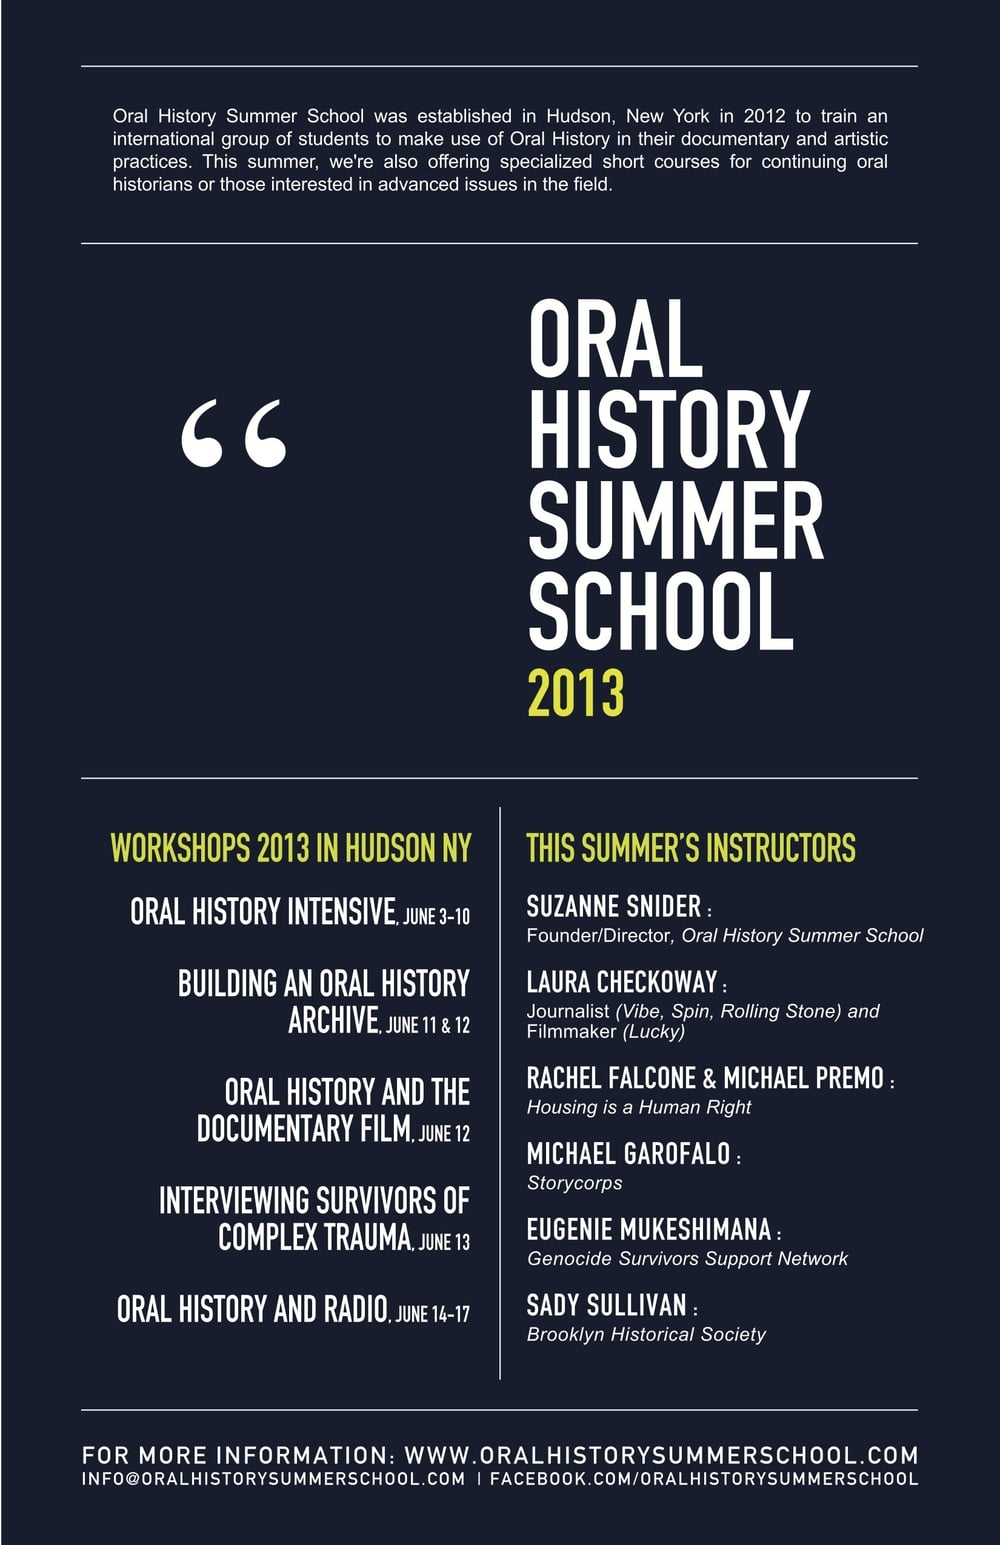 Oral History Summer School 2013